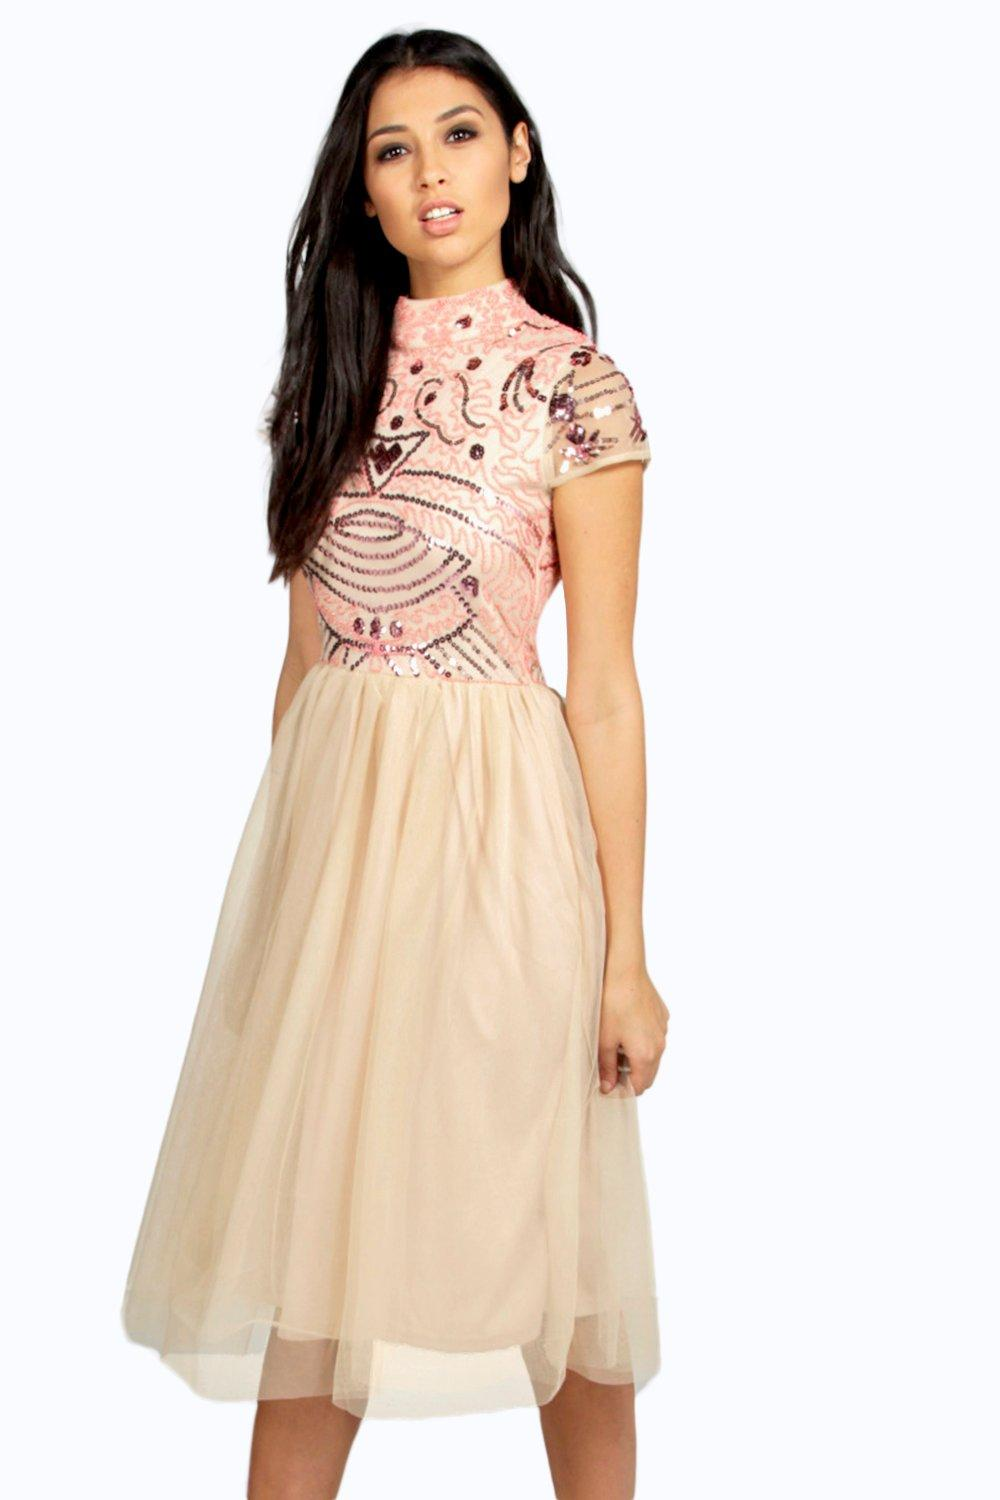 Boutique Ely Embellished Top Tutu Skirt Skater Dress